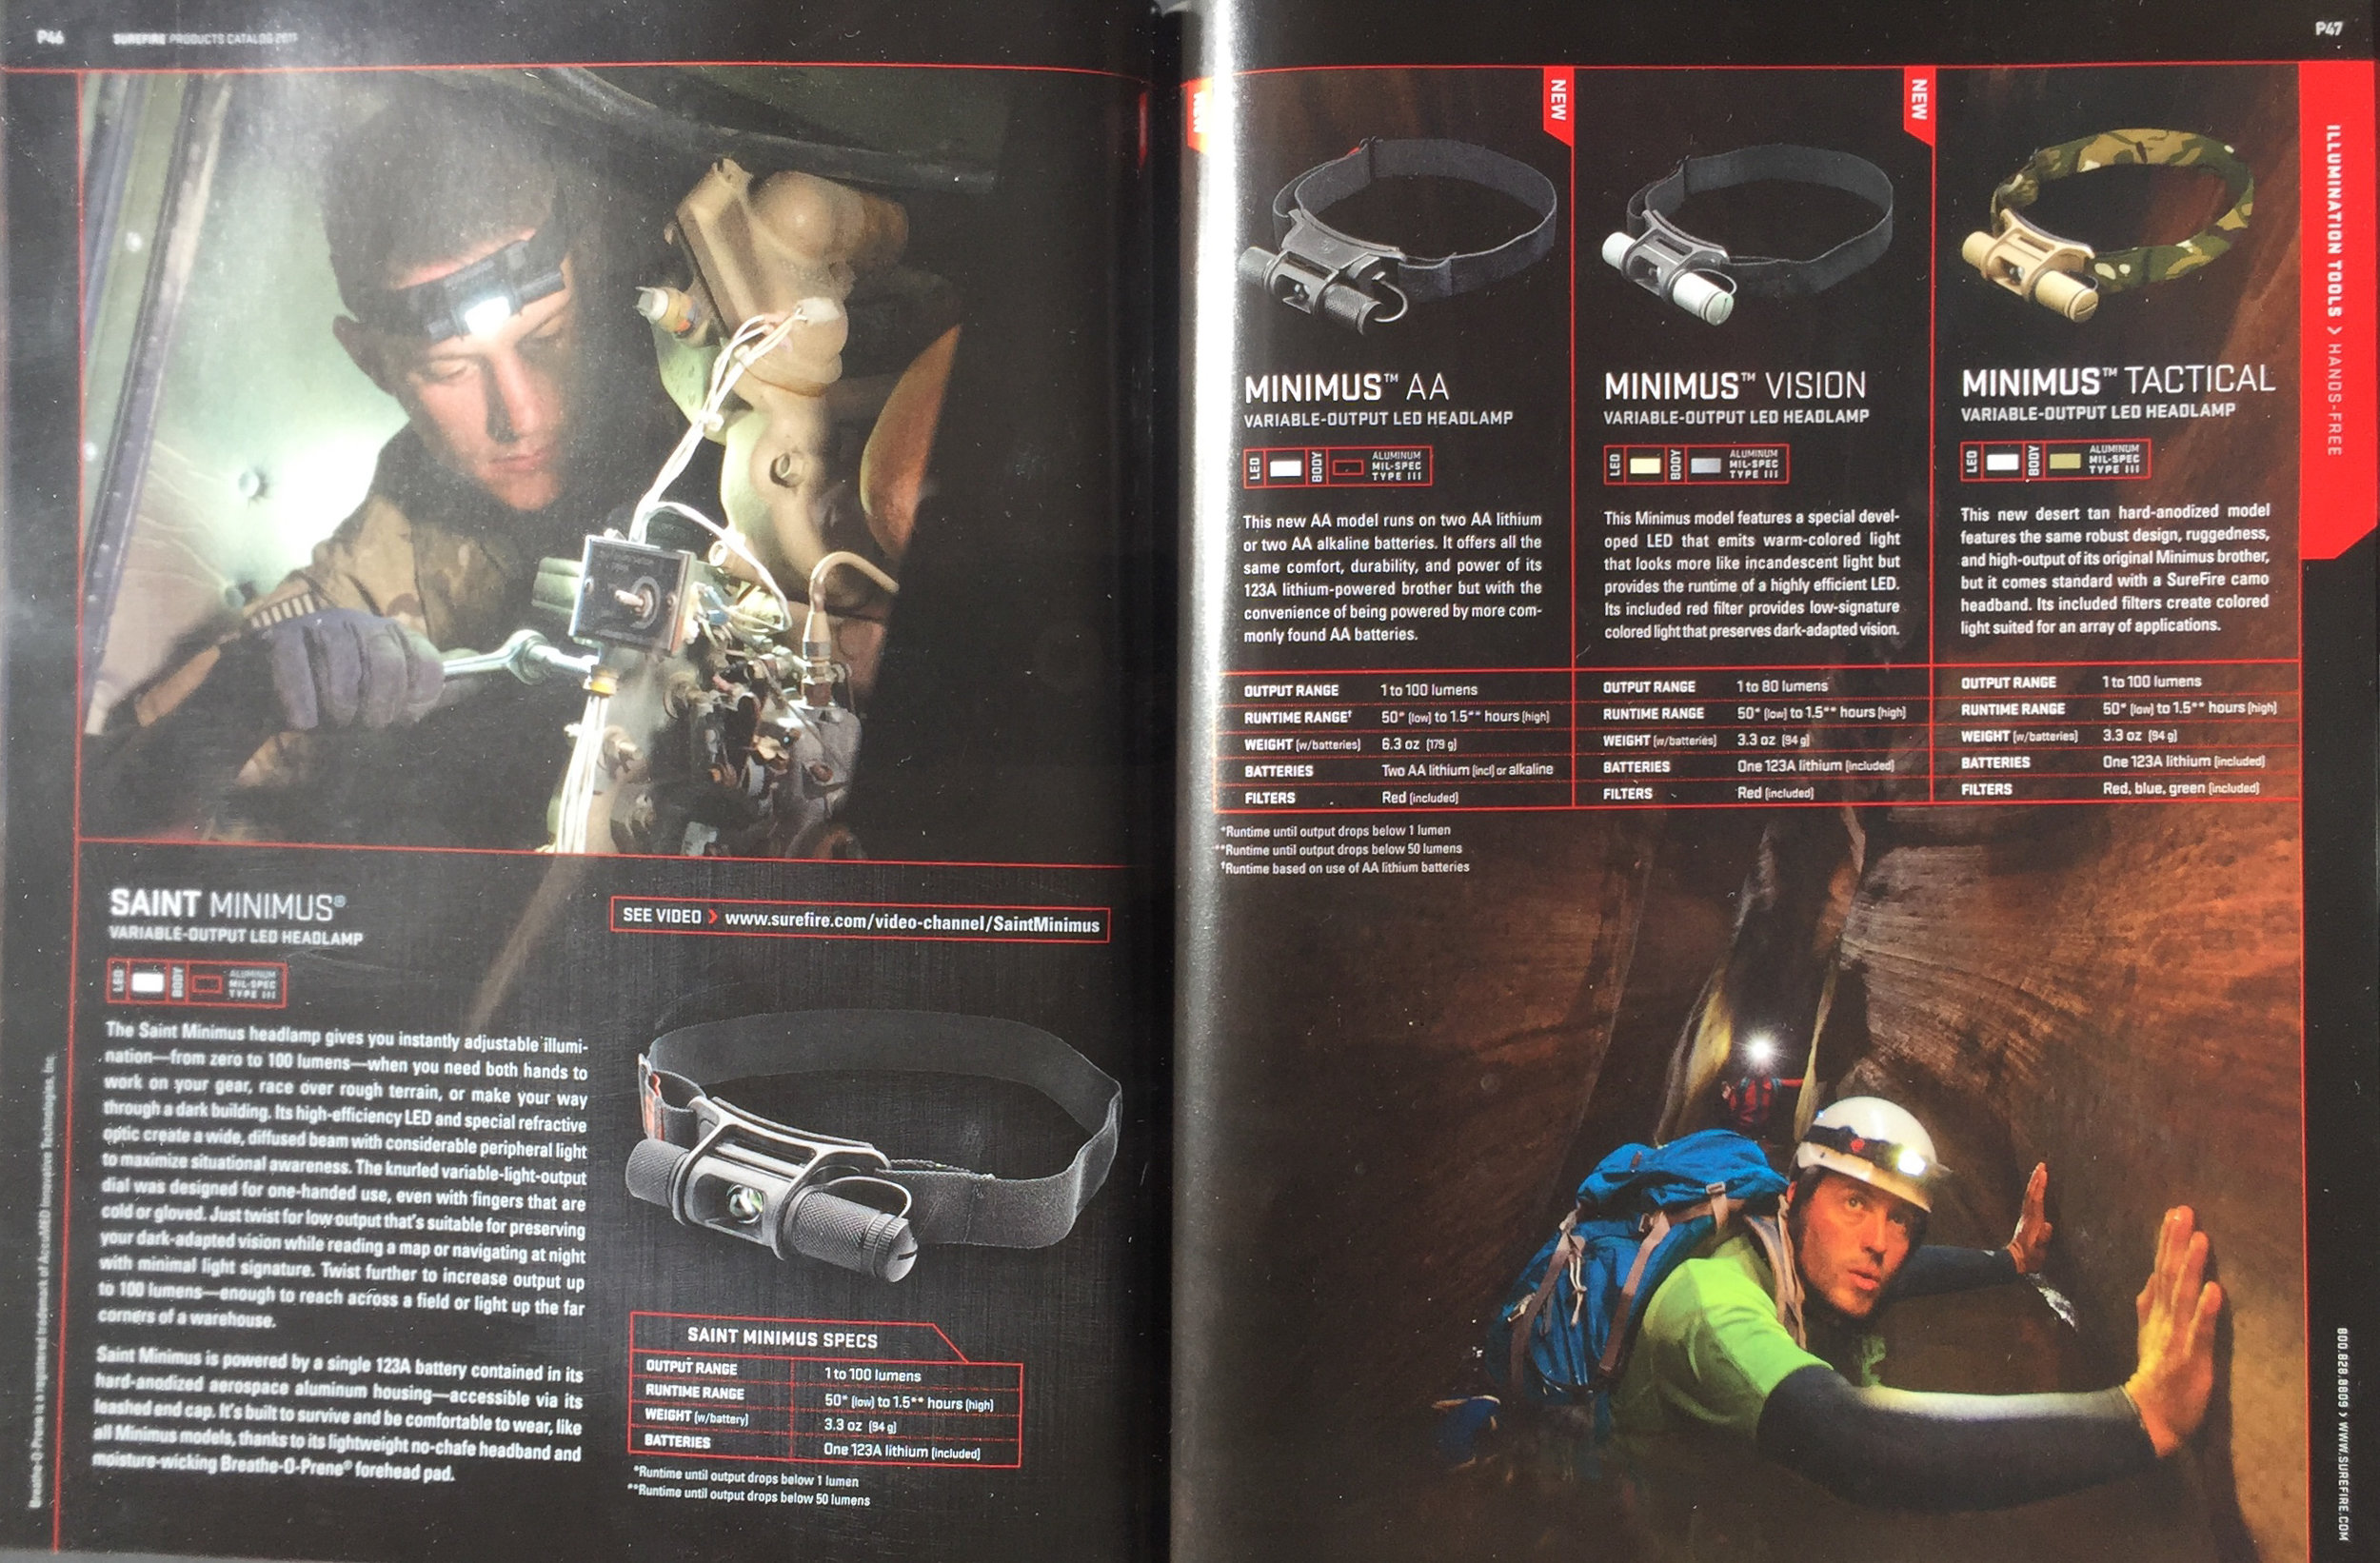 SUREFIRE CATALOG  ADVENTURE MODEL: ERIC ODENTHAL  PHOTOGRAPHER; GREG VON DOERSTEN